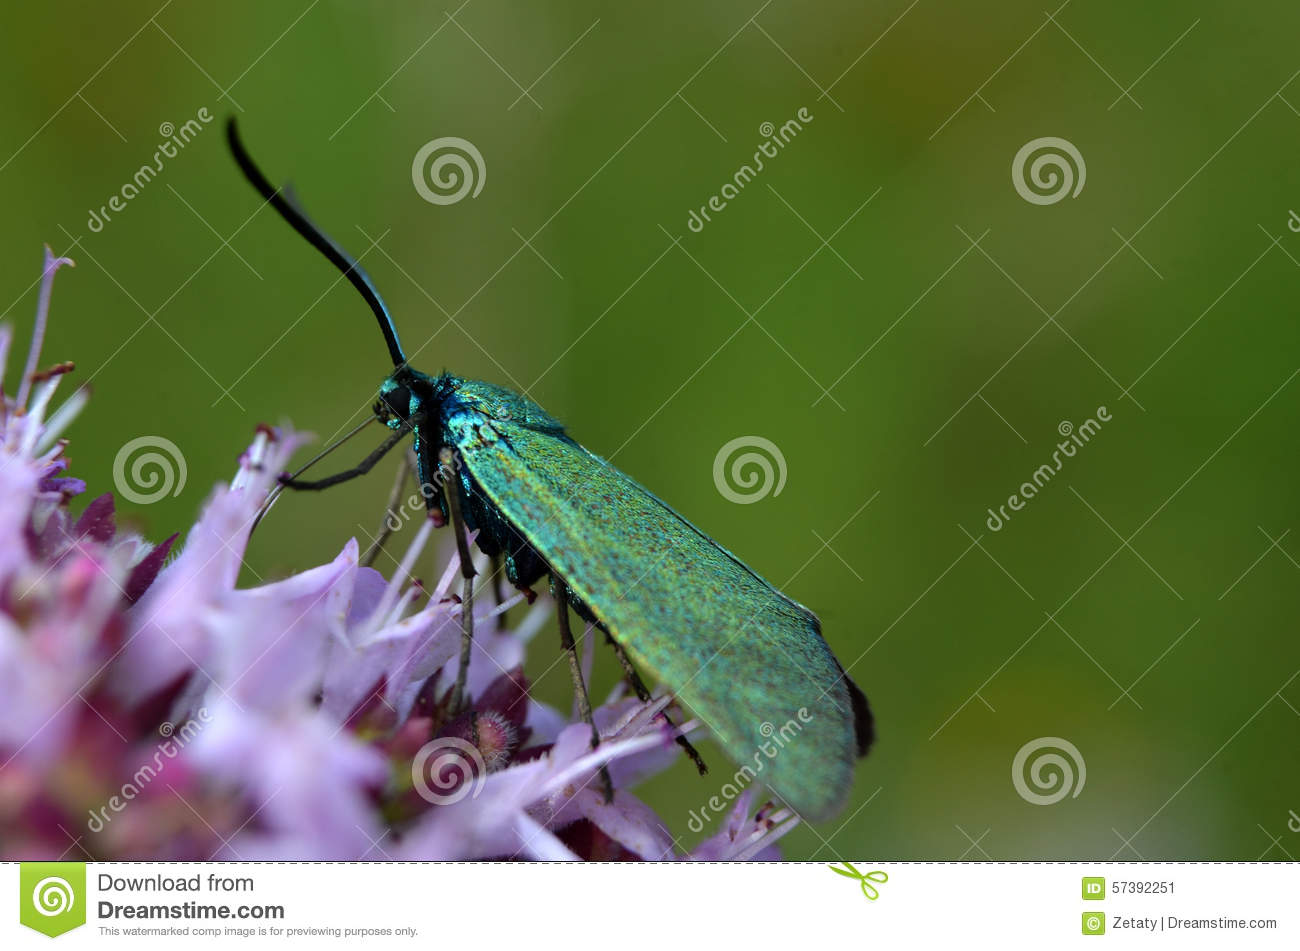 Macroinsect